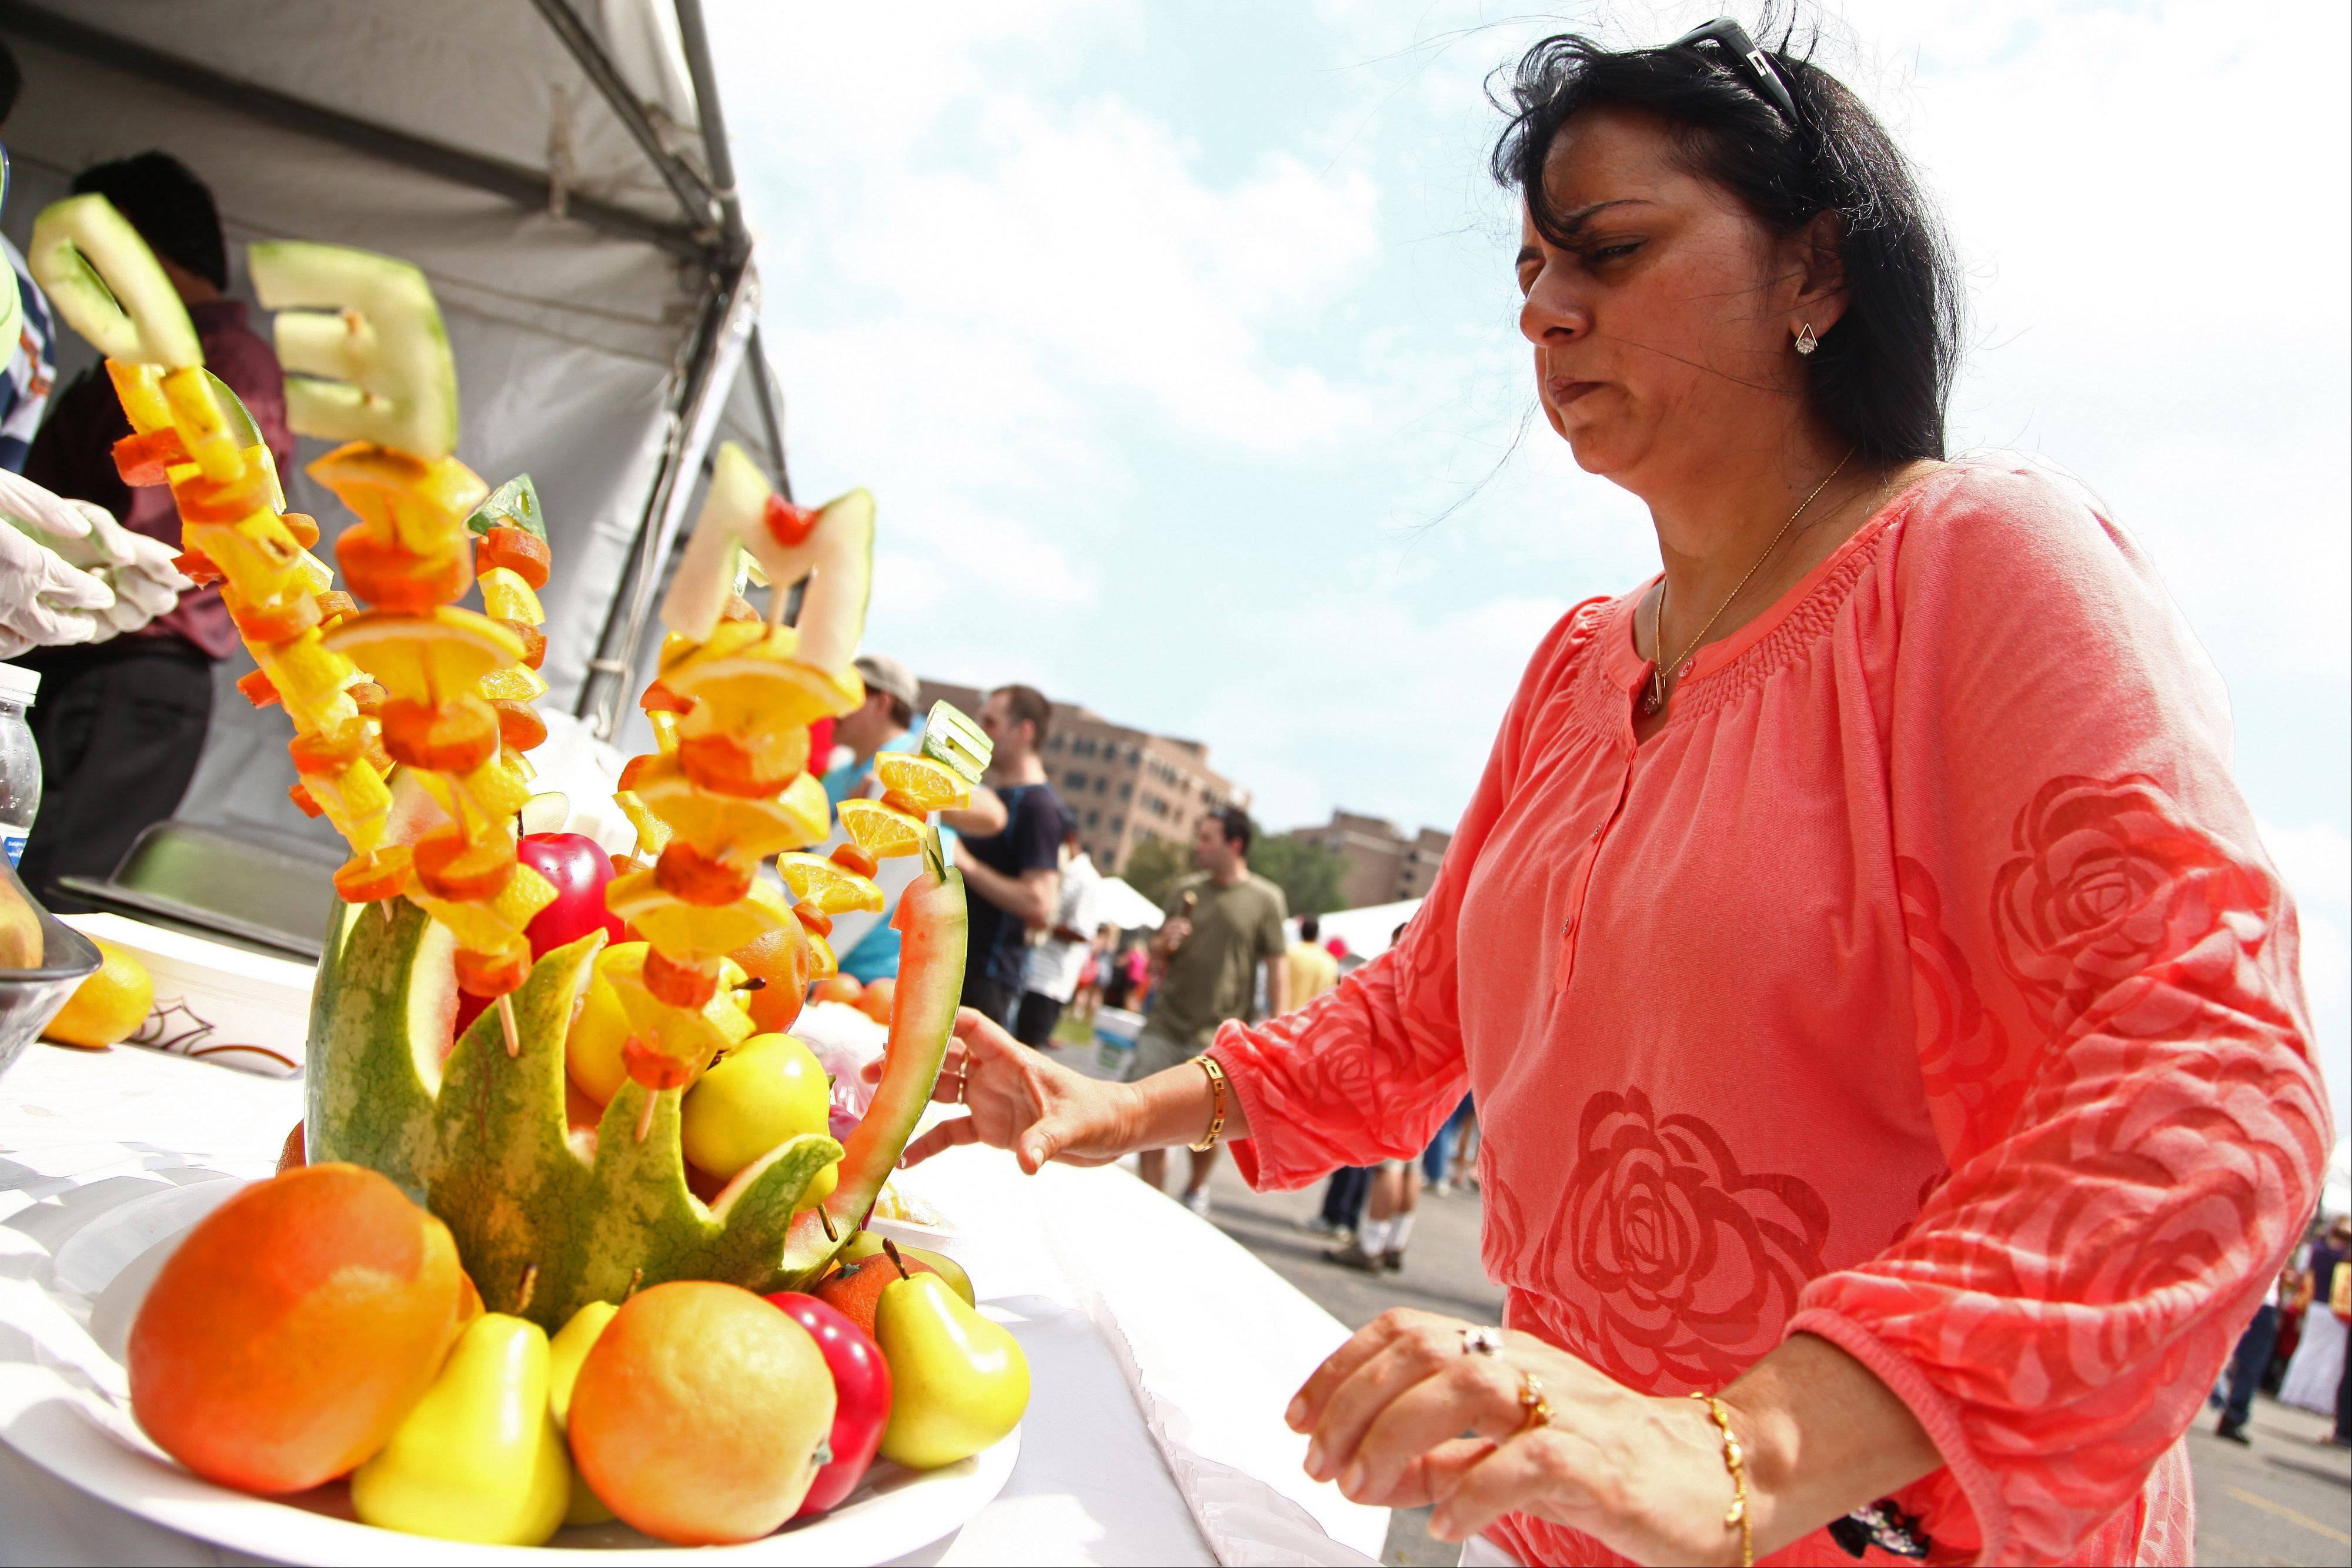 Naperville Veggie Fest makes name with food demos, speakers